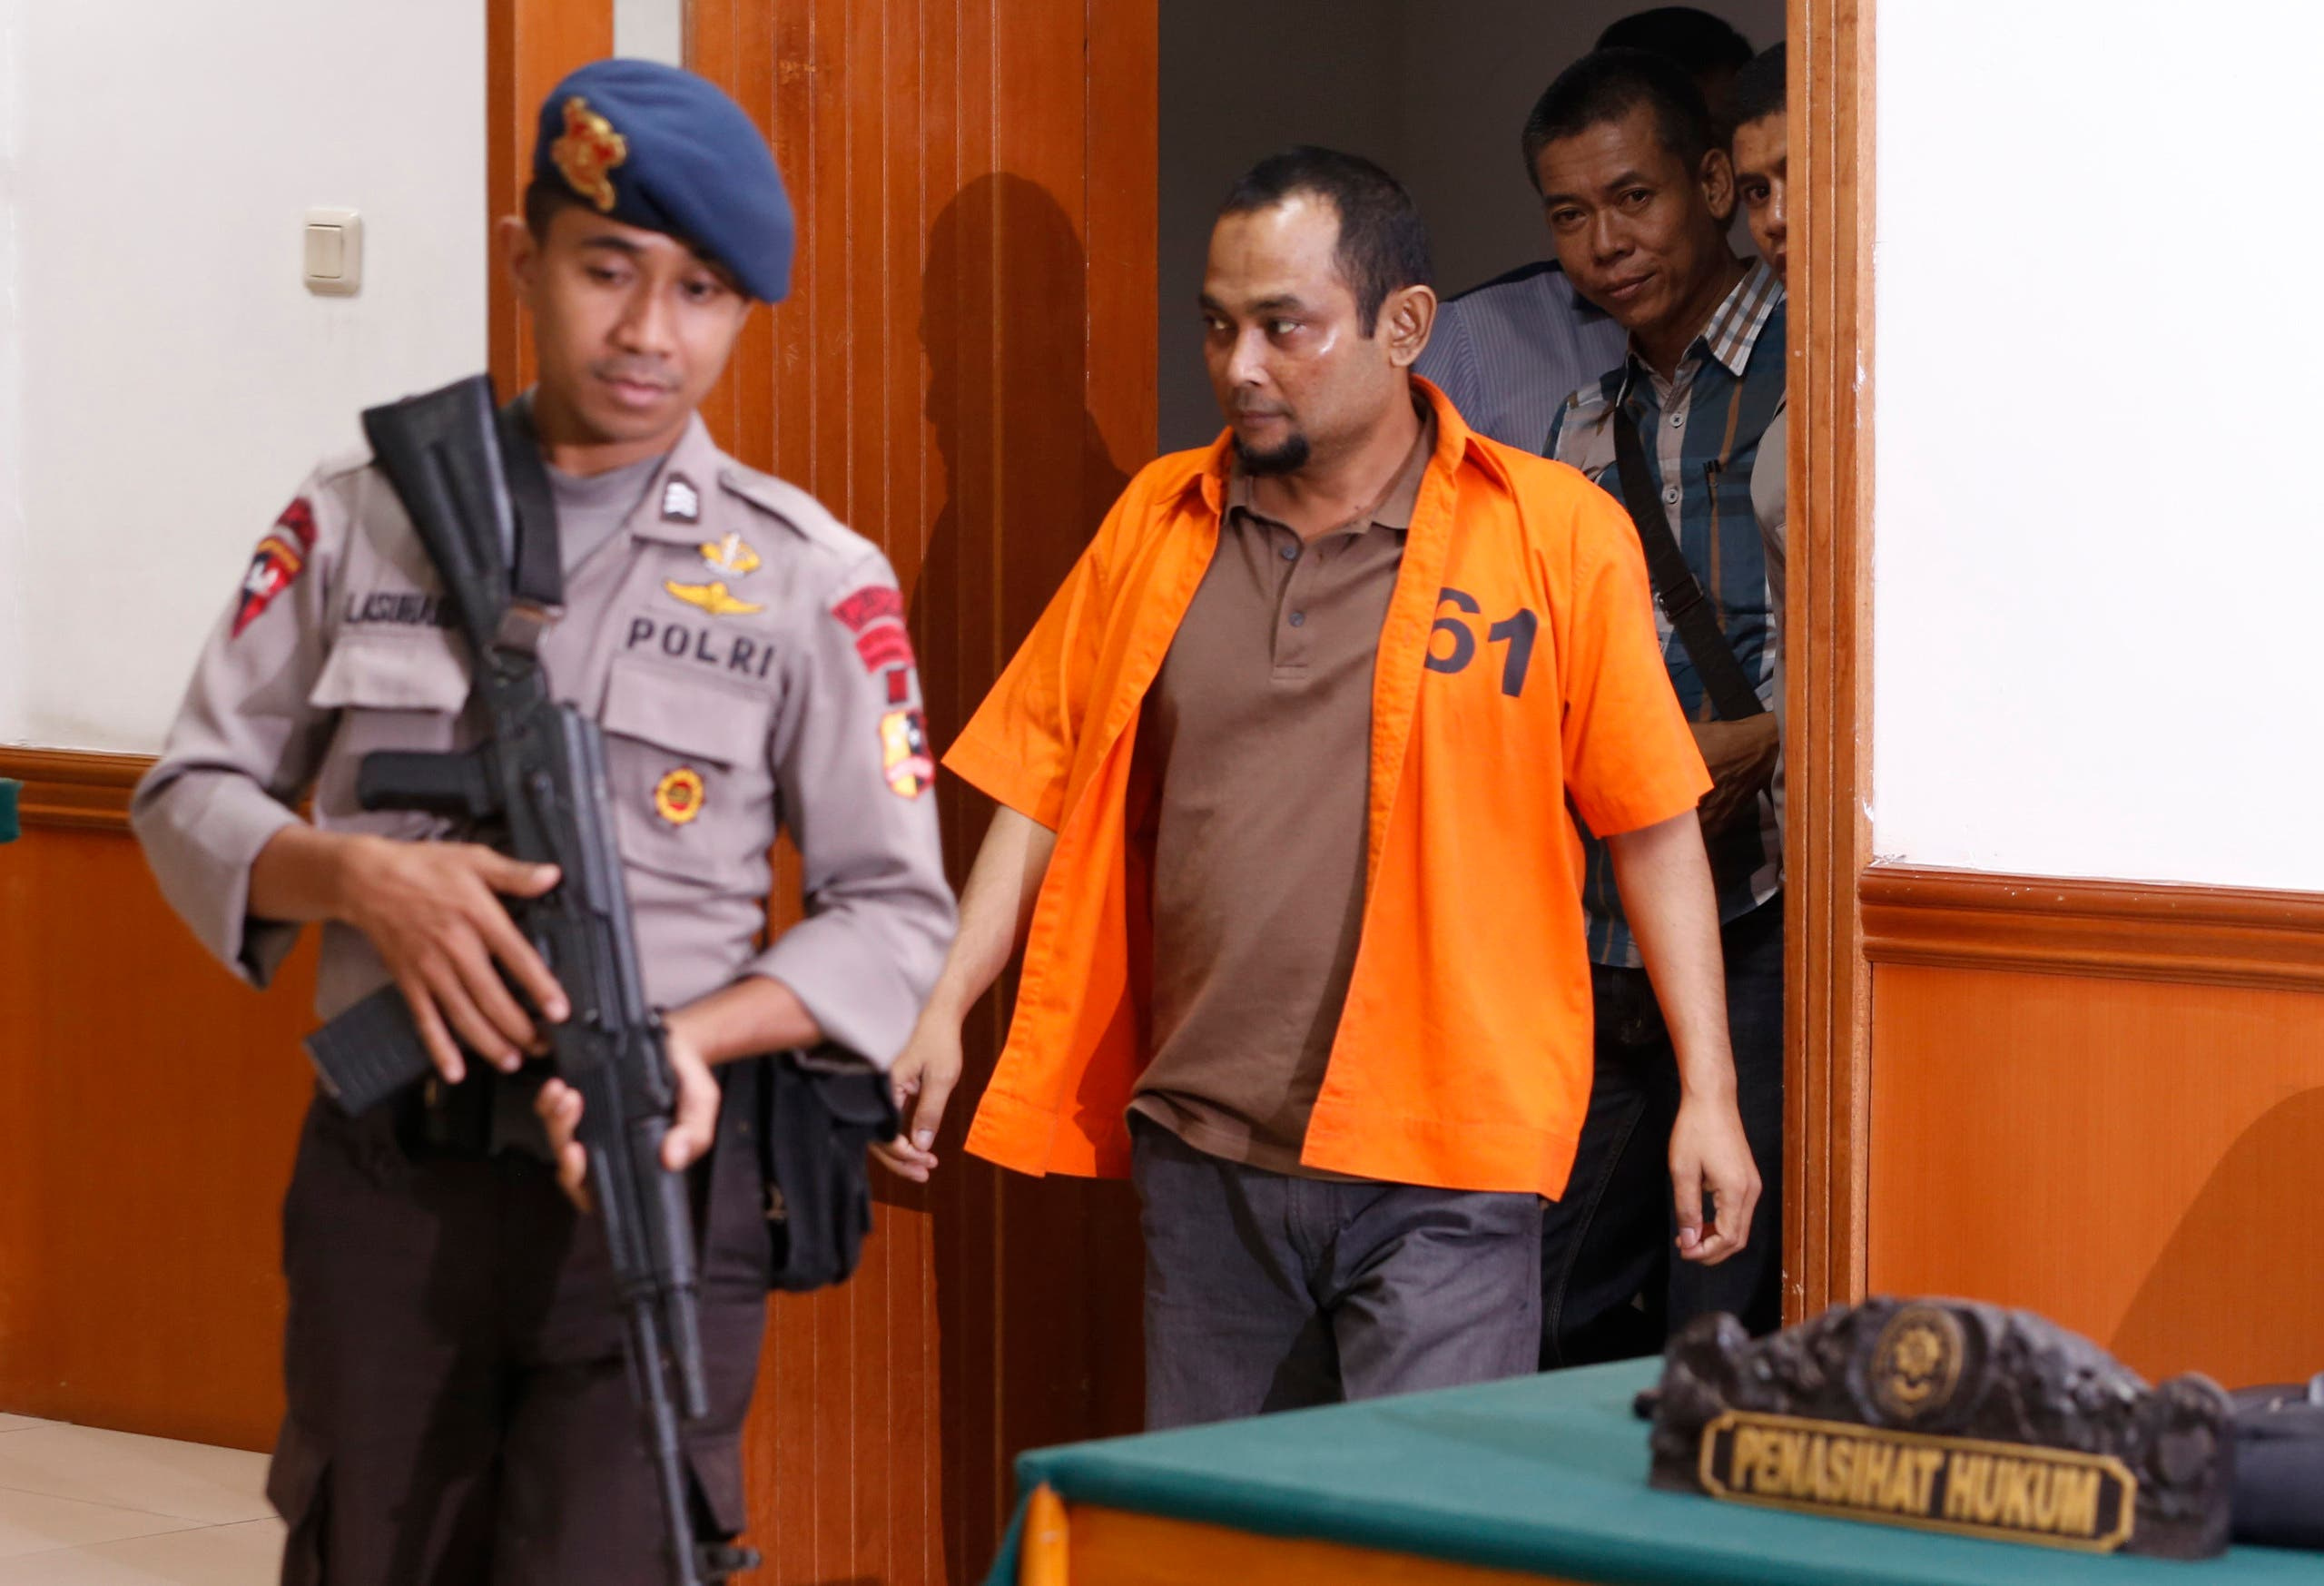 Aprimul Henry (C), also known as Mulbin Arifin, who is accused of supporting Islamic State, is escorted by a policeman as he arrives for his trial at West Jakarta court in Jakarta, February 9, 2016.